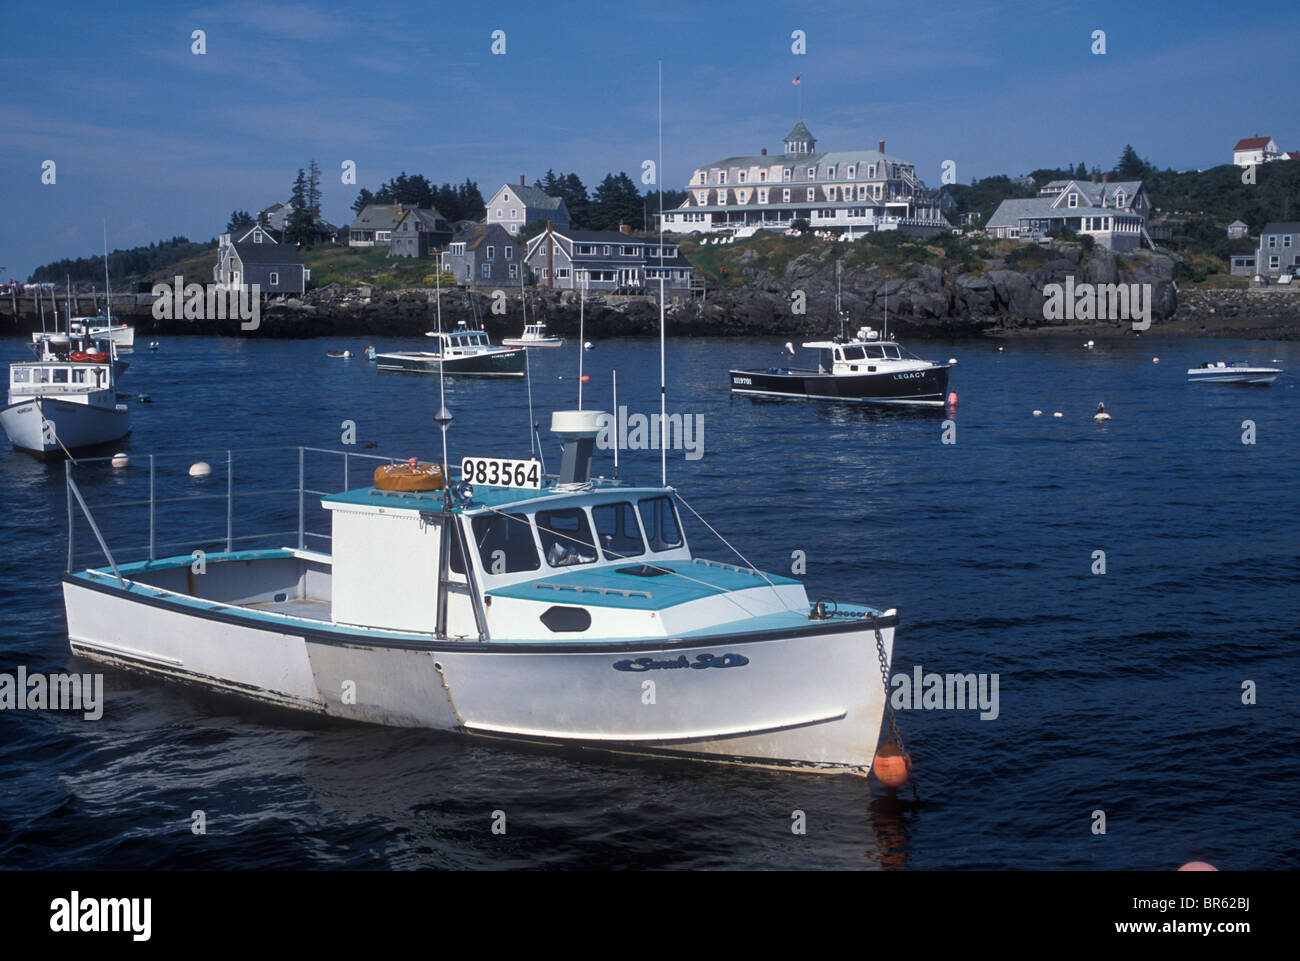 Venerable buildings and boats on the picturesque island of Mohegan Central Maine. - Stock Image